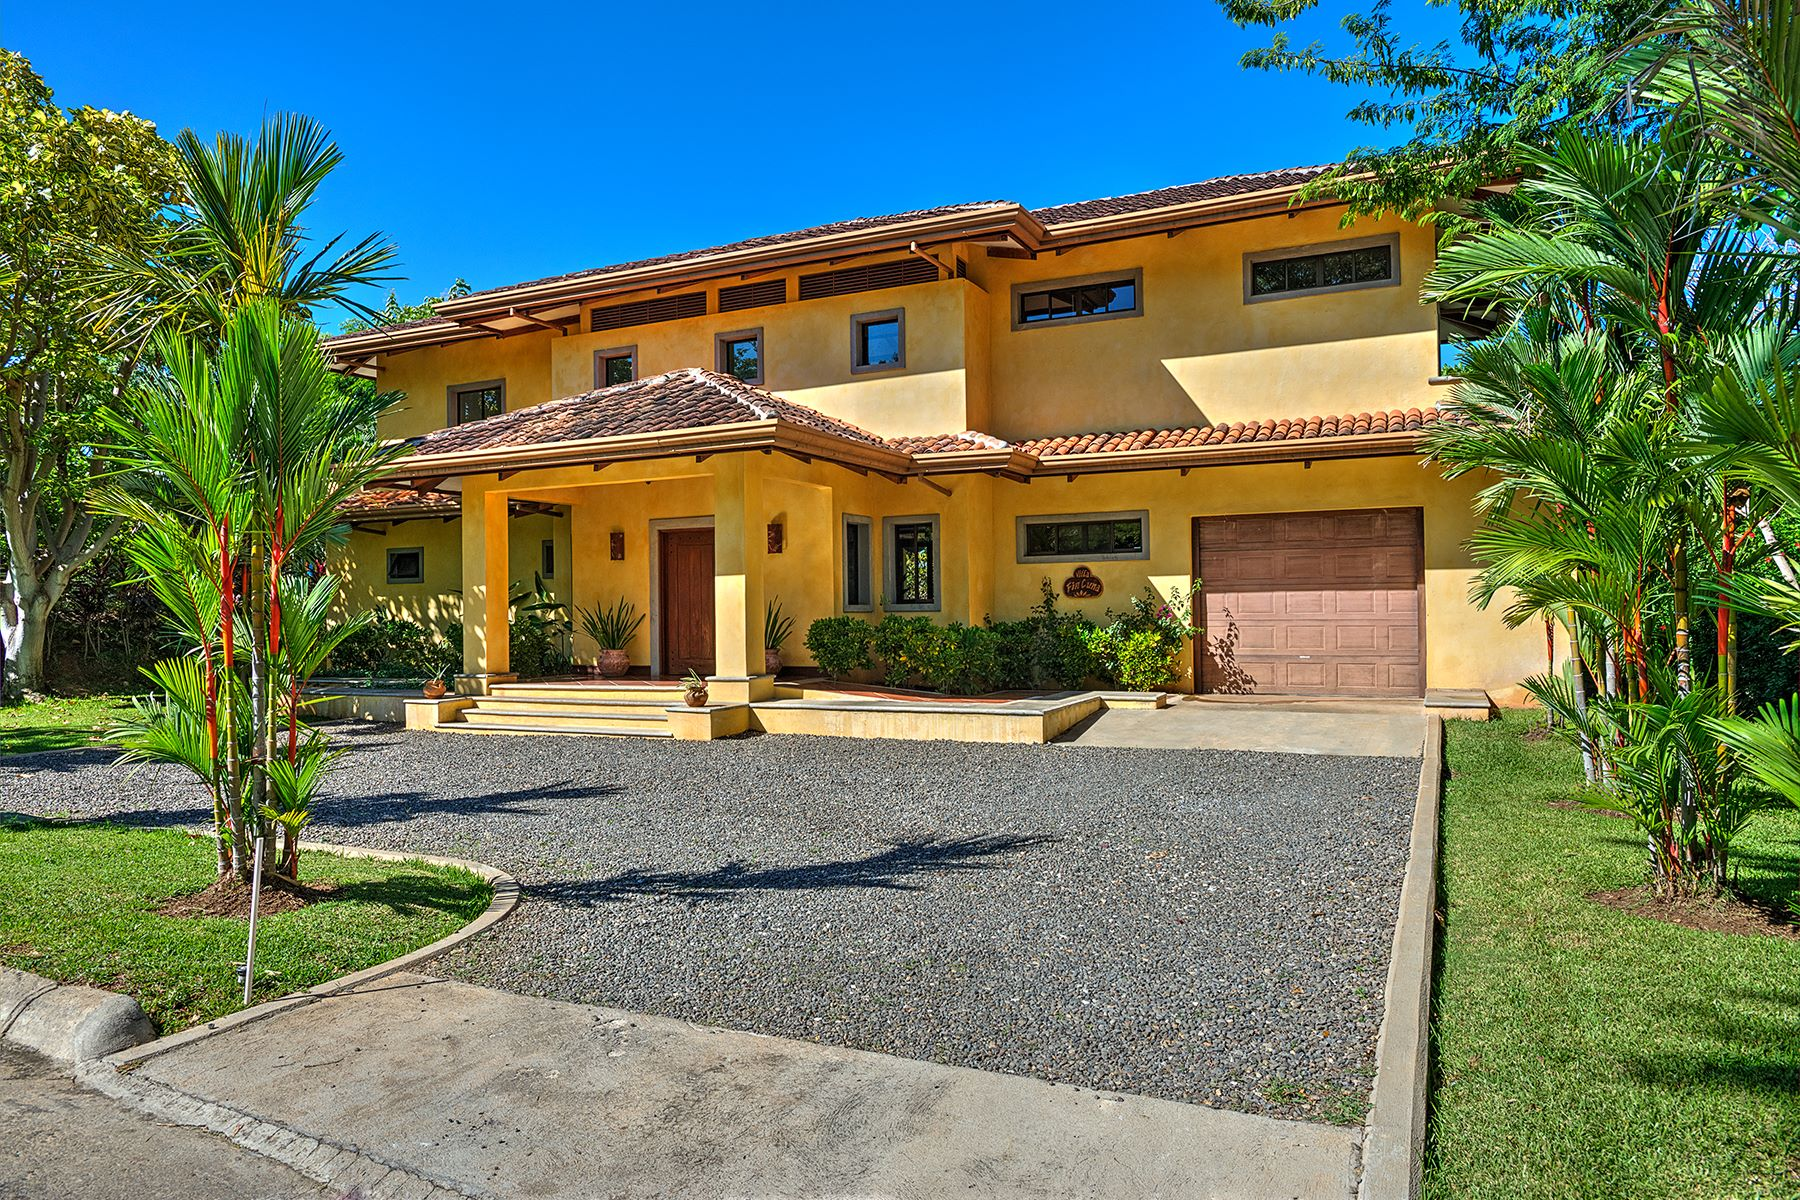 Single Family Home for Sale at Villa Fin Luna PRICE REDUCED Reserva Conchal, Guanacaste Costa Rica